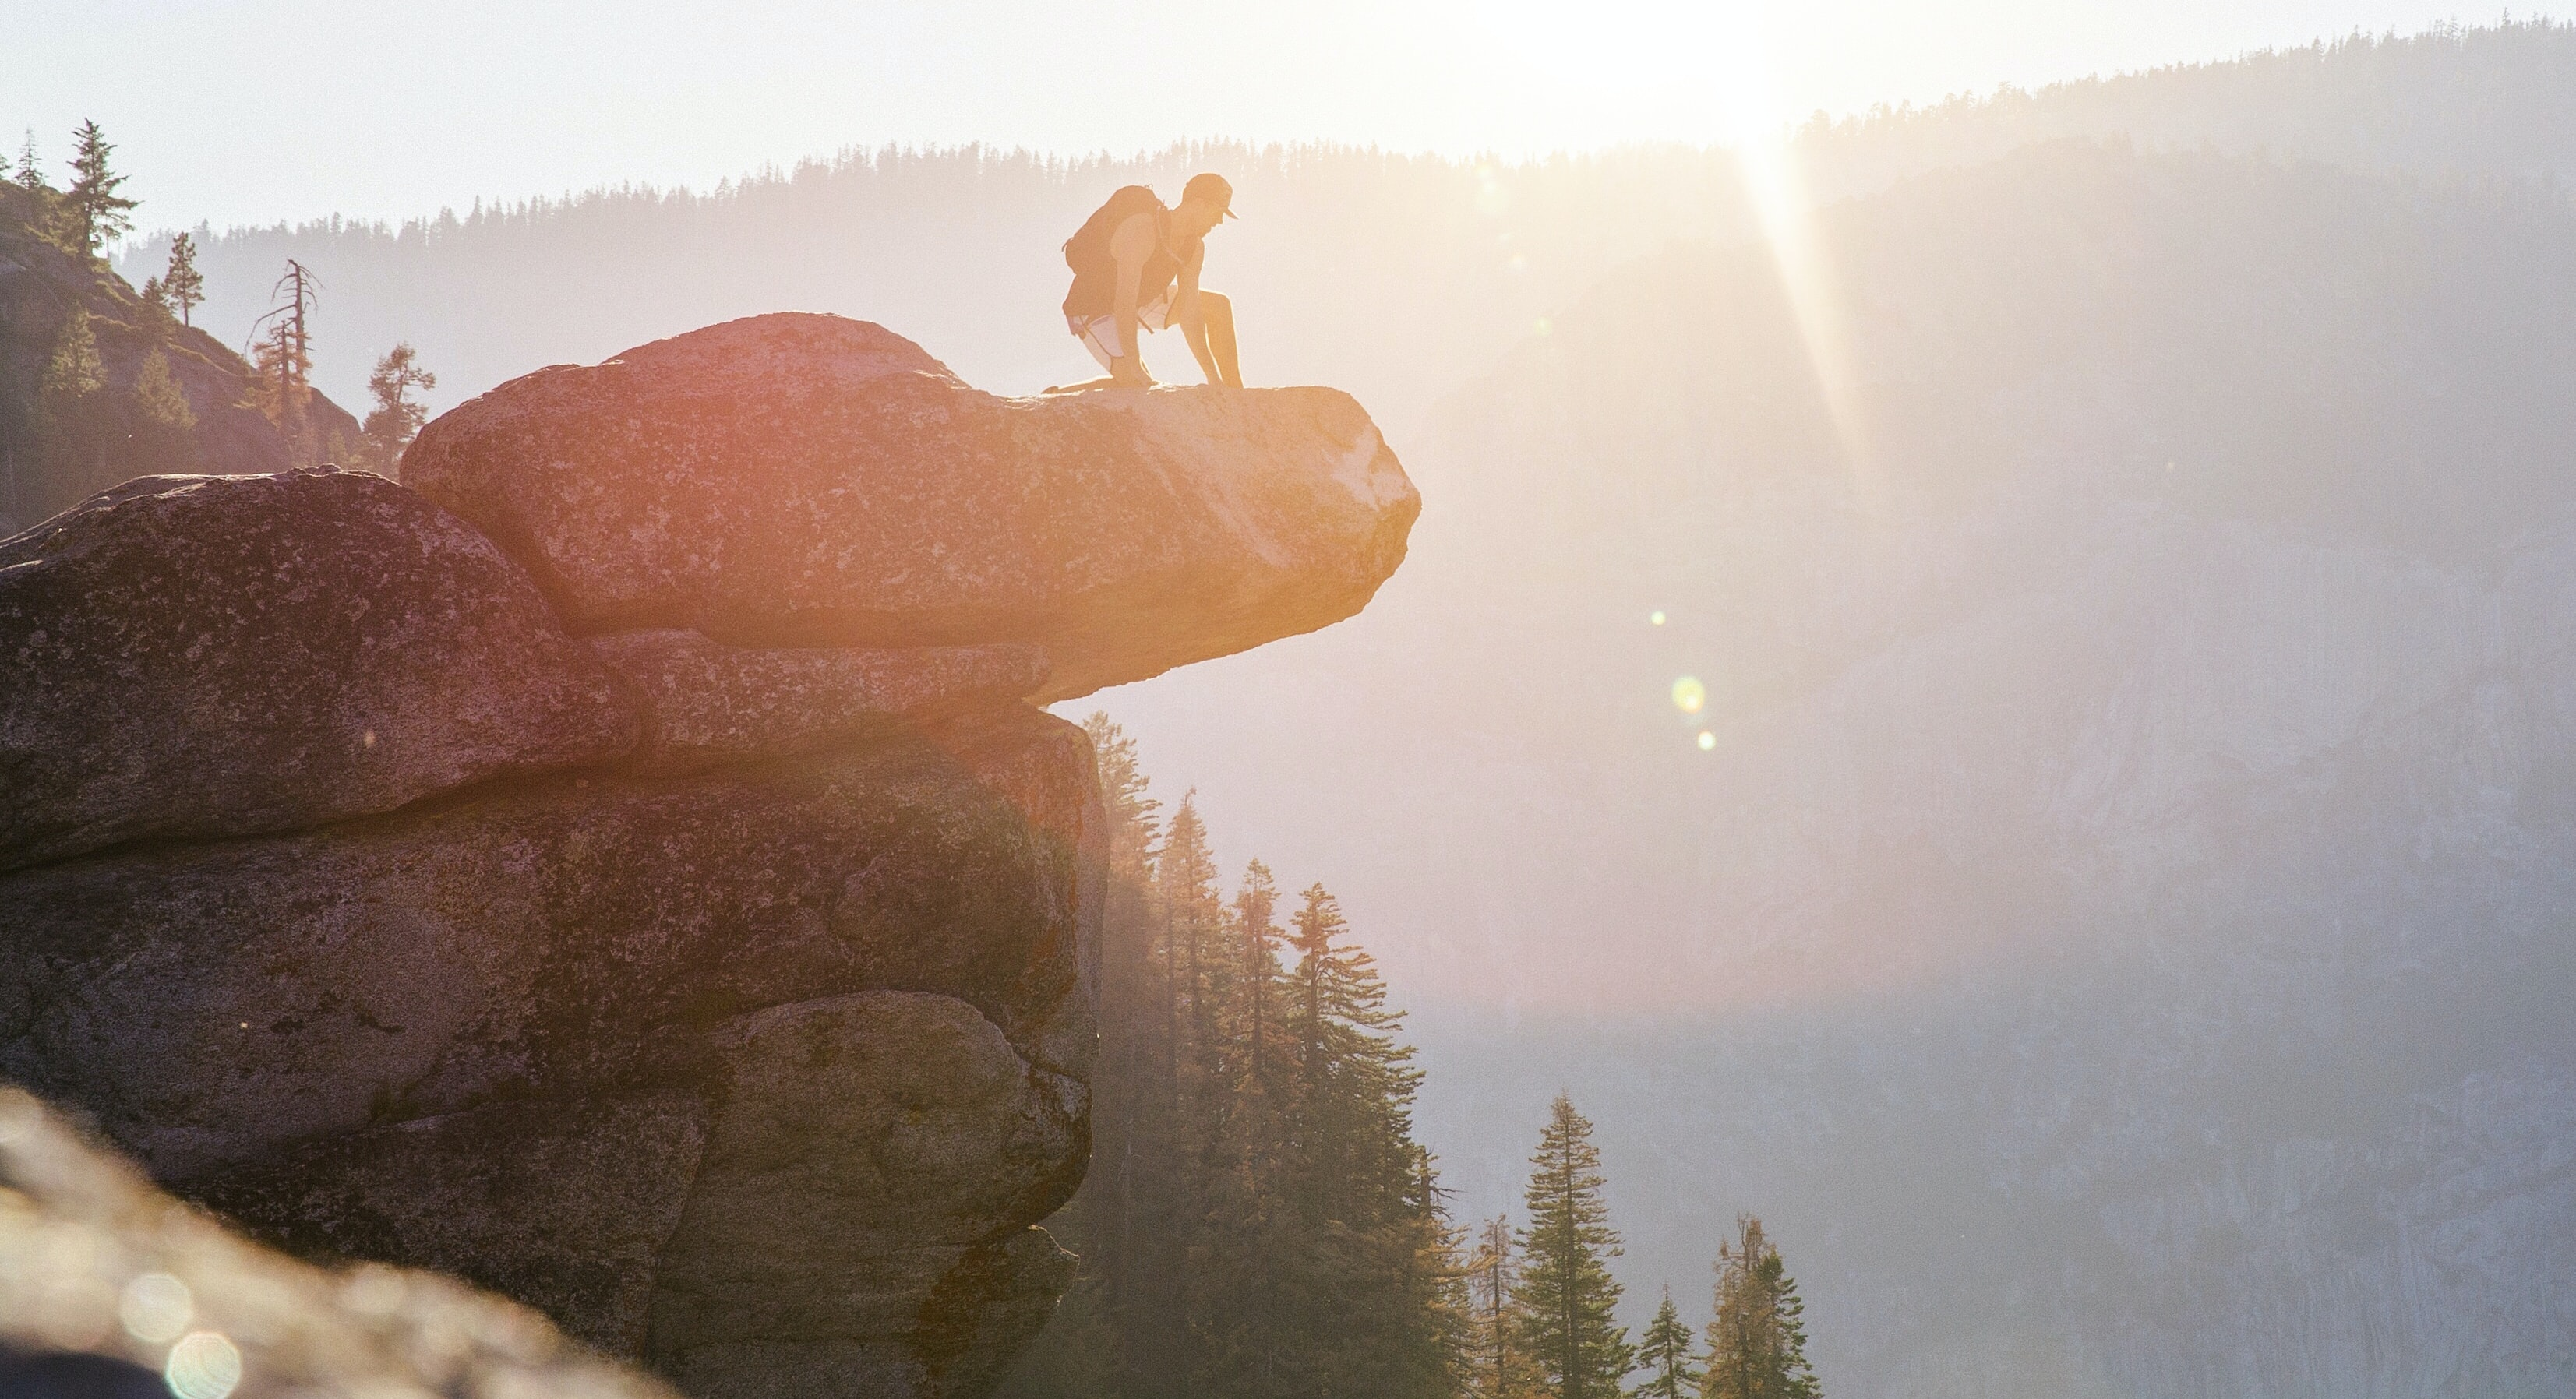 A person kneeling on the ledge of a rock with the sunset in the background at Glacier Point